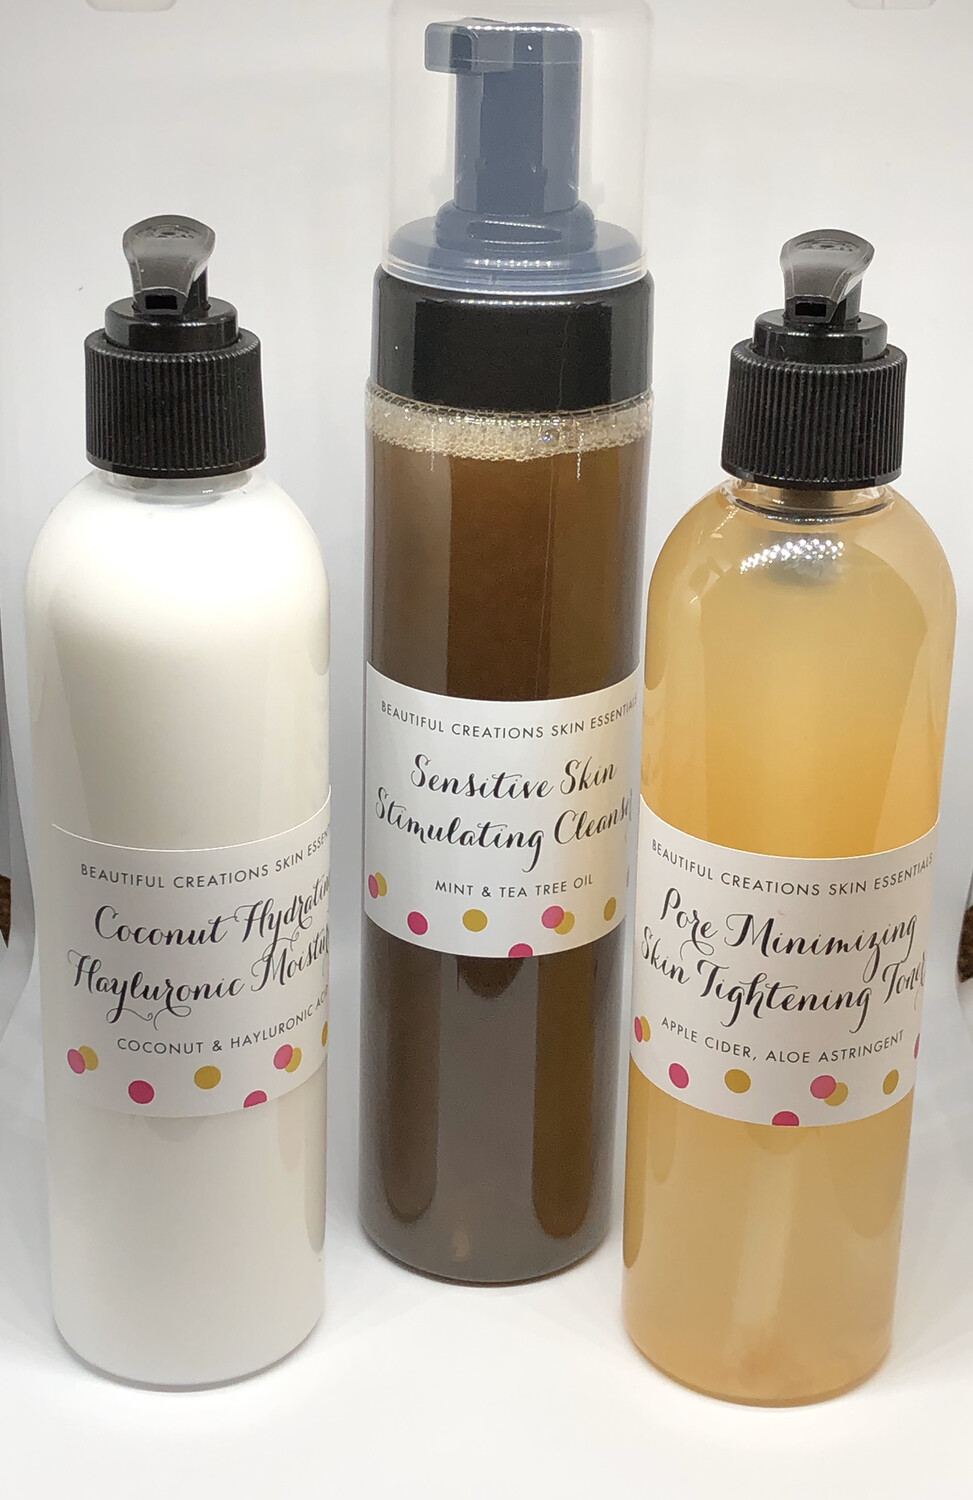 Beautiful Creations Skin Essentials  3pc. System 8 oz. (5-6 Months Supply)